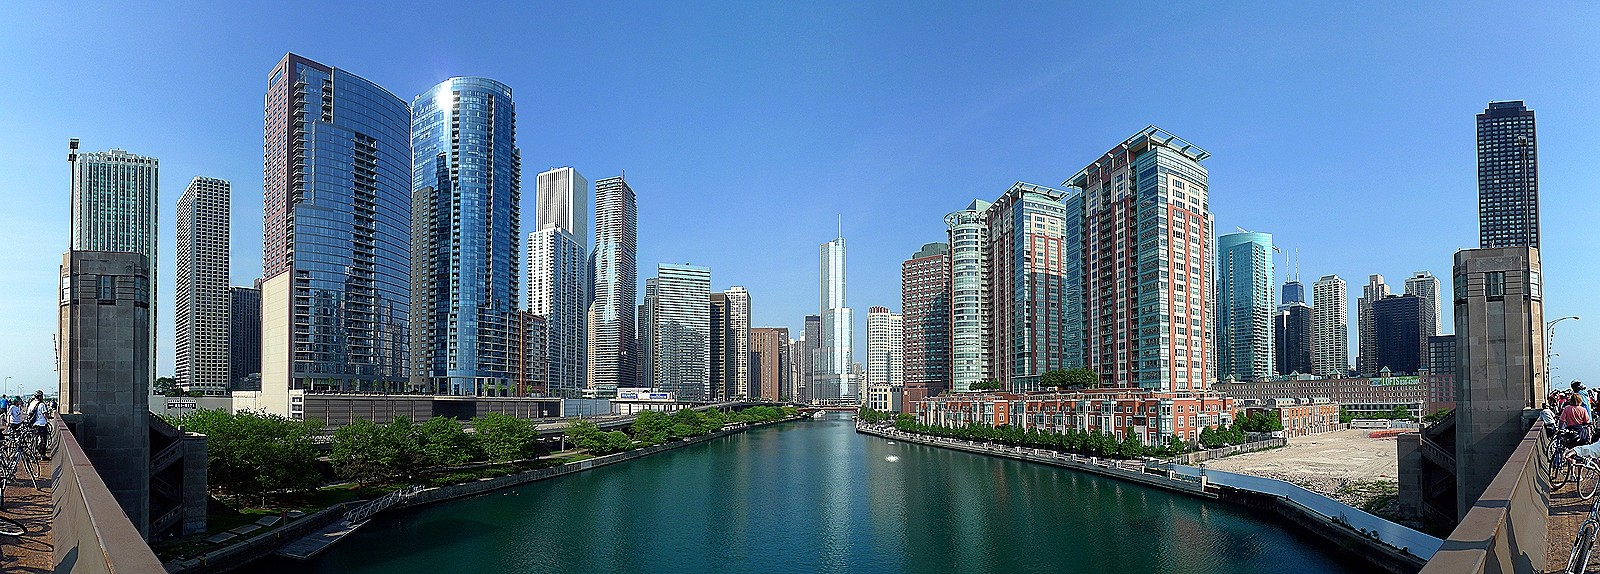 Buildings-Along-Chicago-River